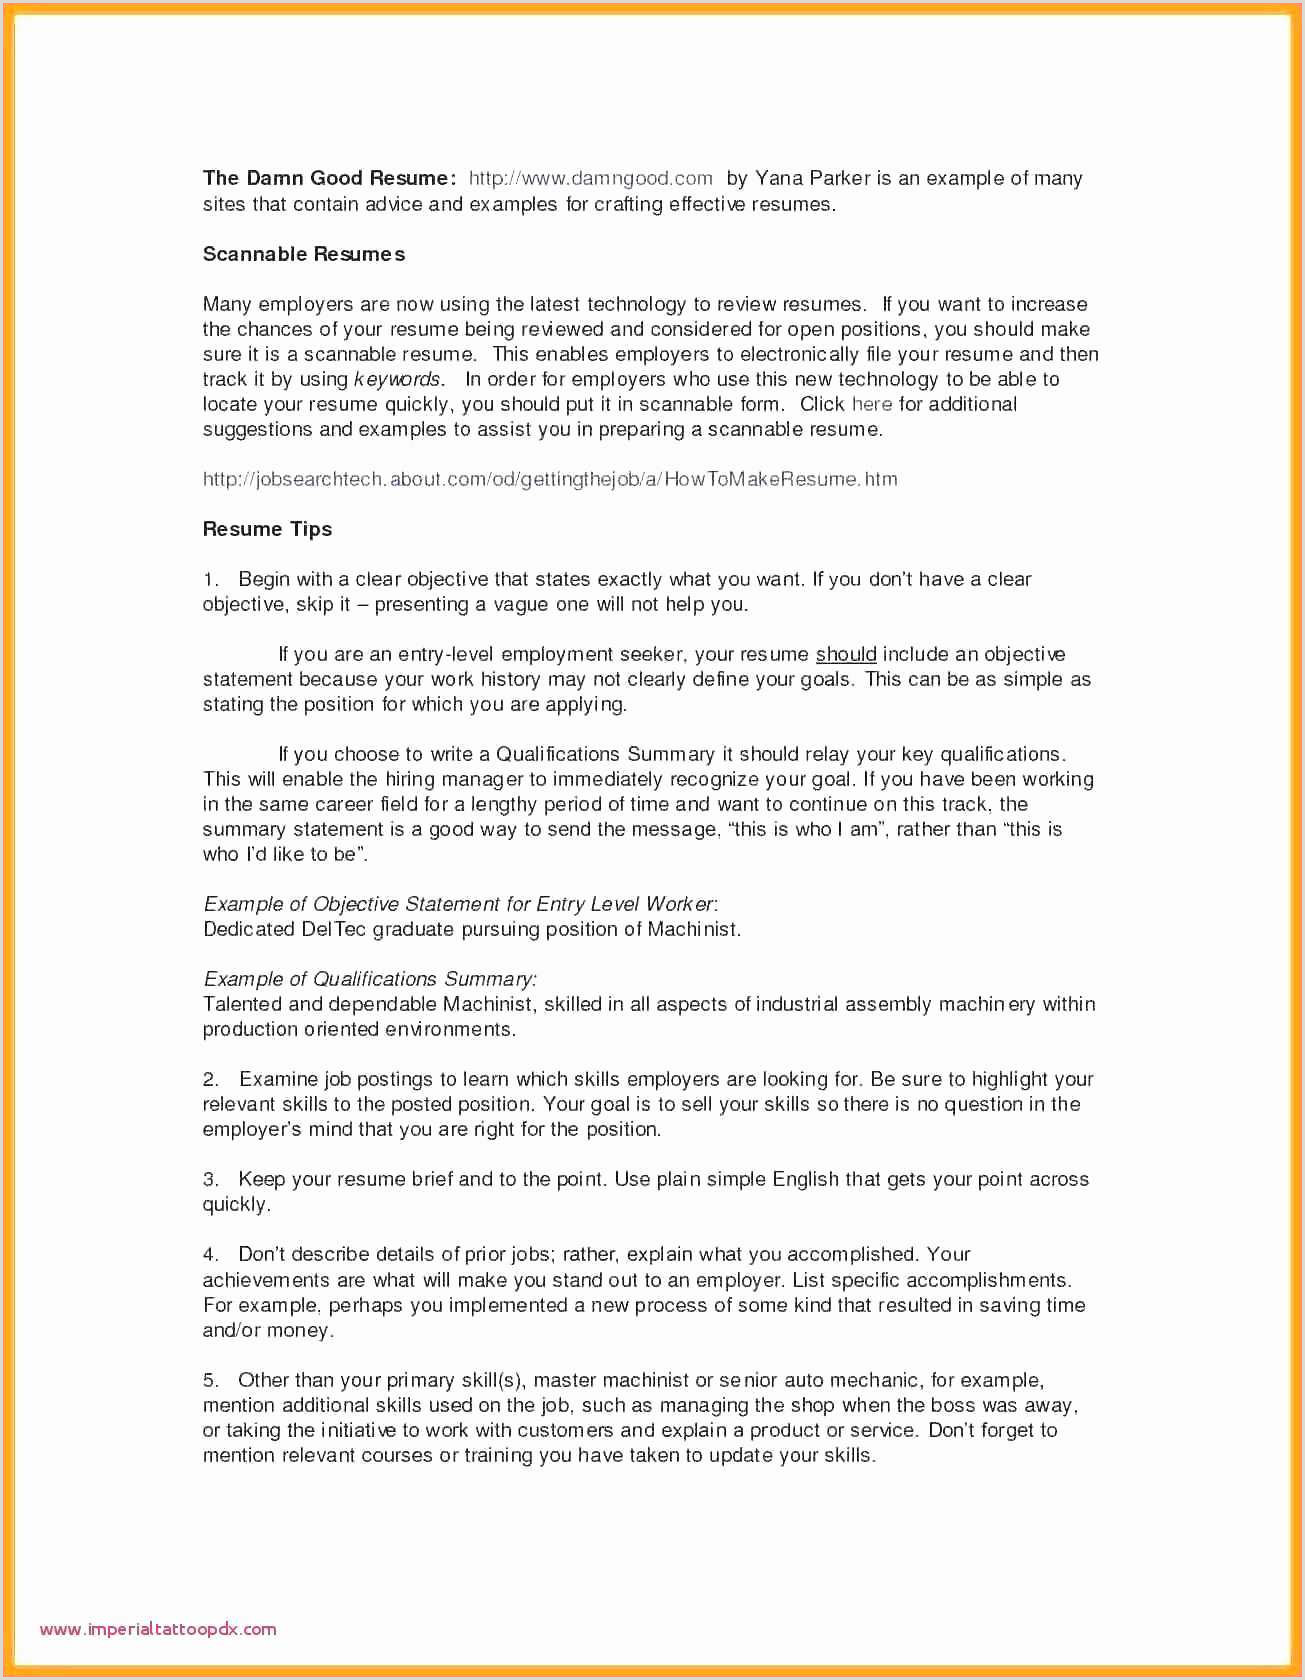 pliance ficer Resume Template 25 Examples Operations